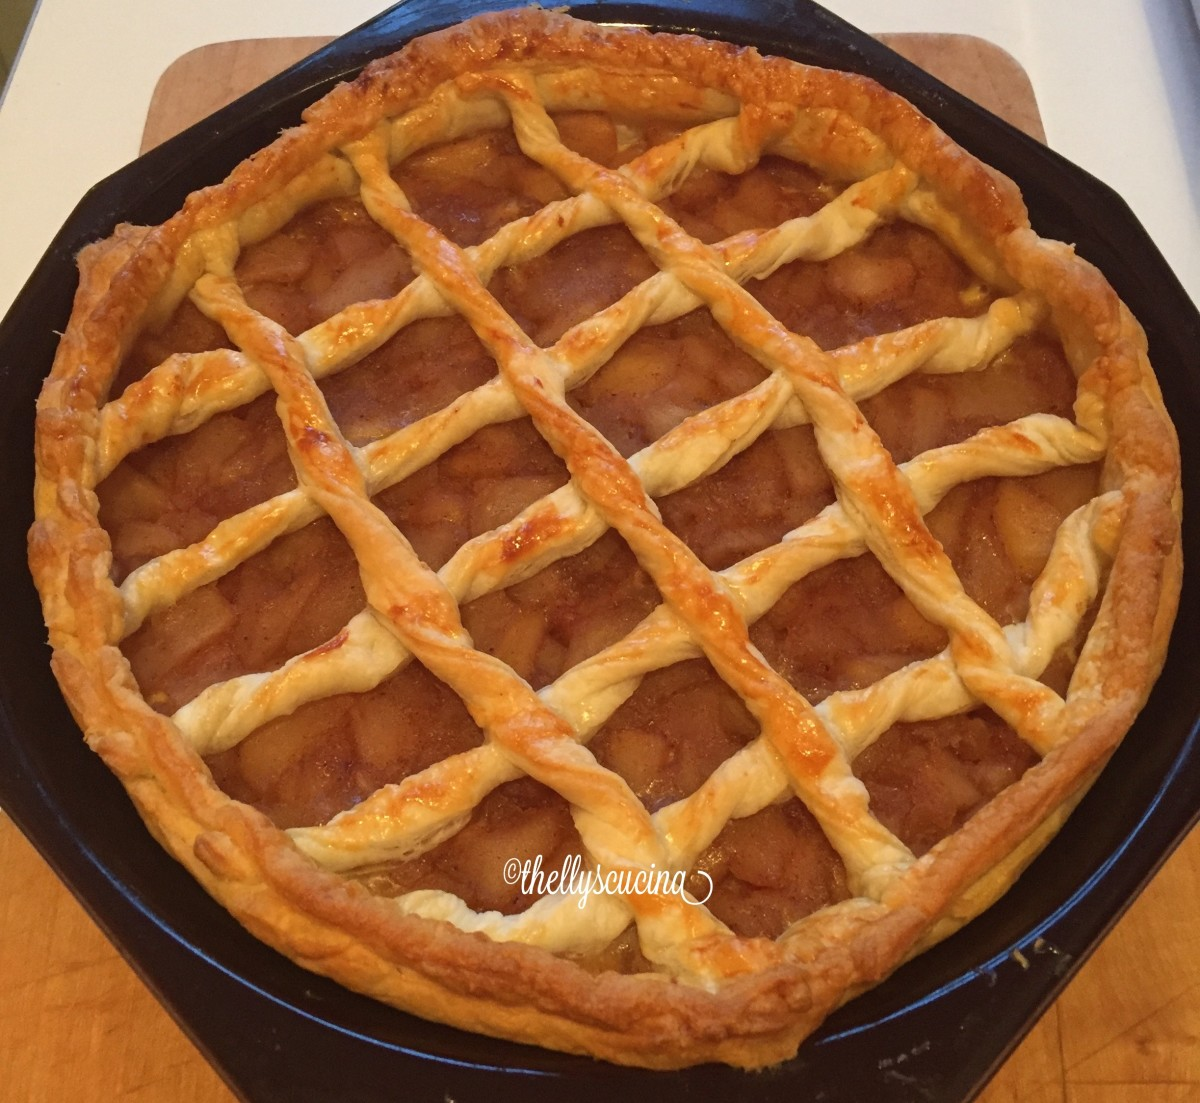 Apple pie ready to serve